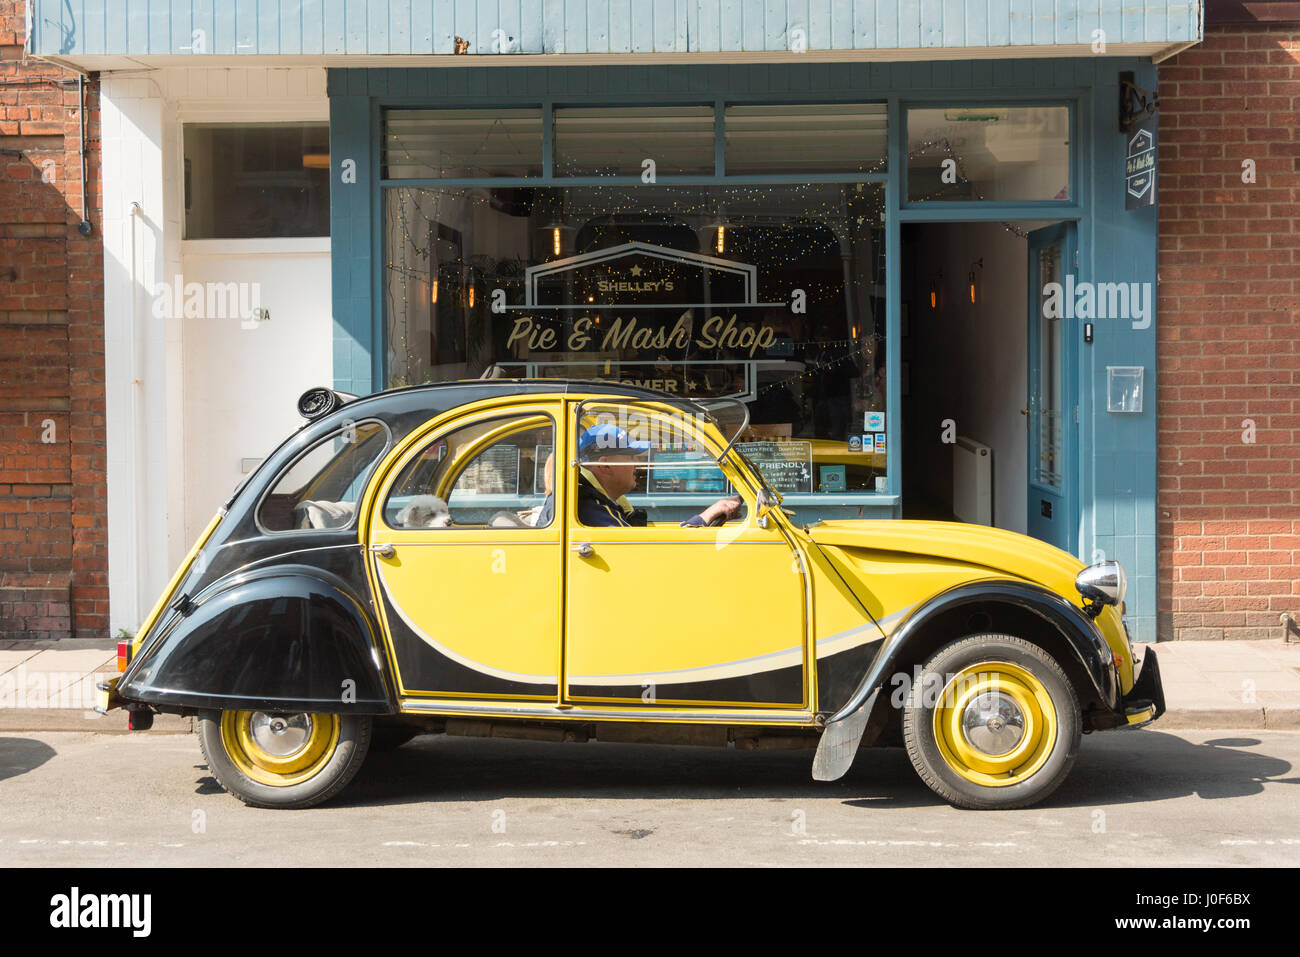 A black and yellow Citroen 2CV vintage car parked outside a pie and mash shop - Stock Image